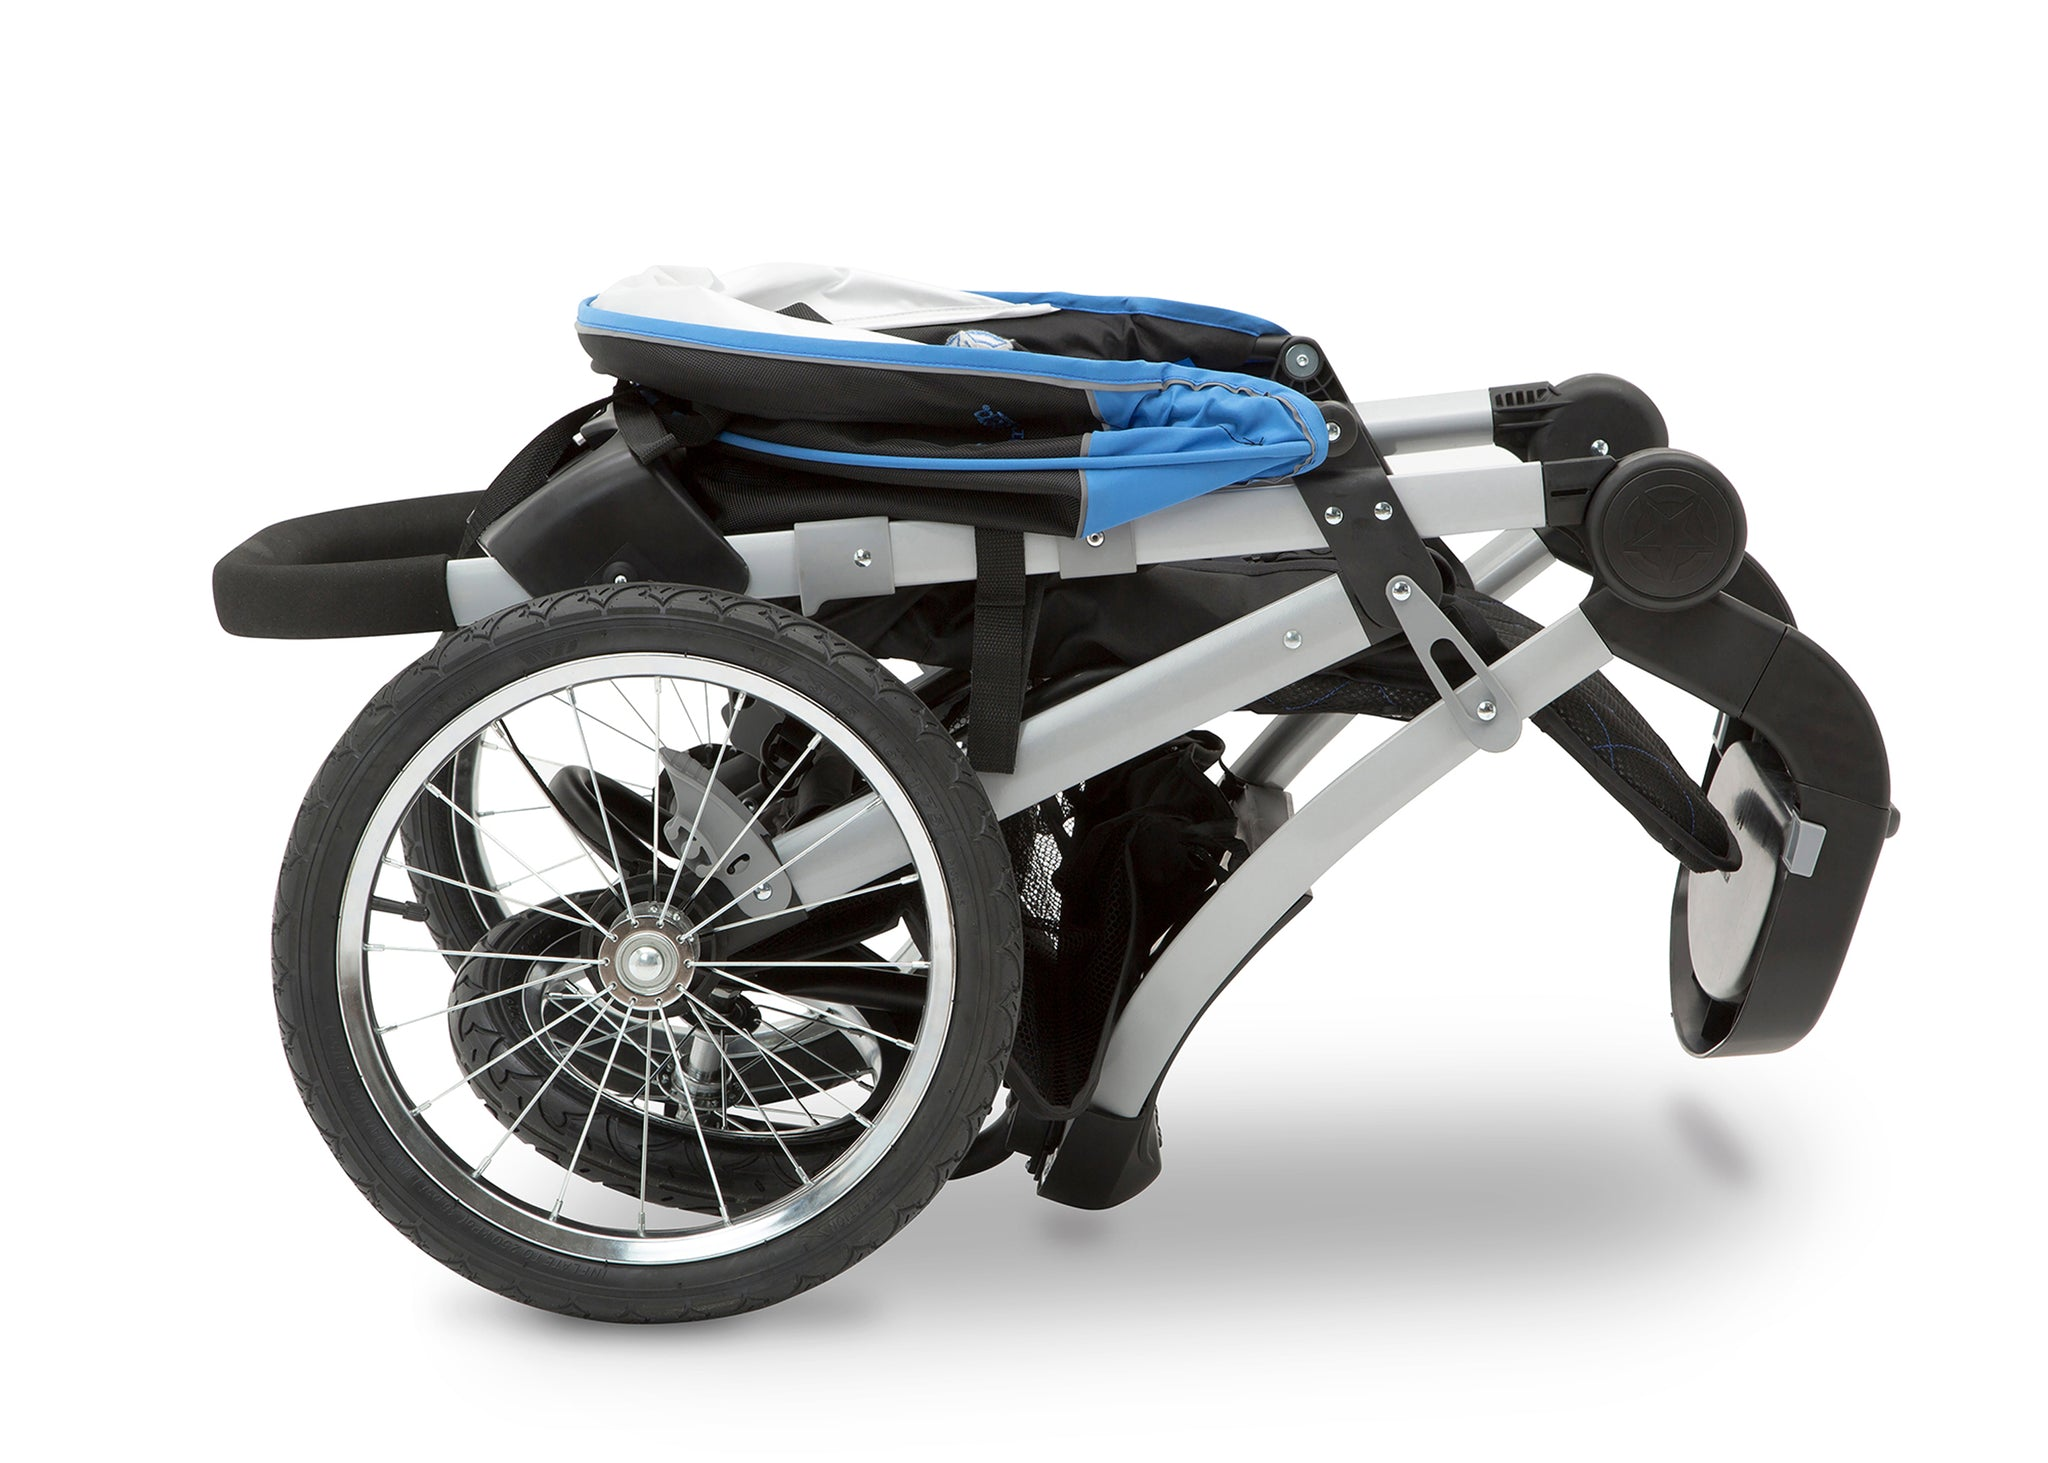 Jeep Unlimited Range Jogger by Delta Children, Trek Blue Tonal (436), can be folded quickly and compactly